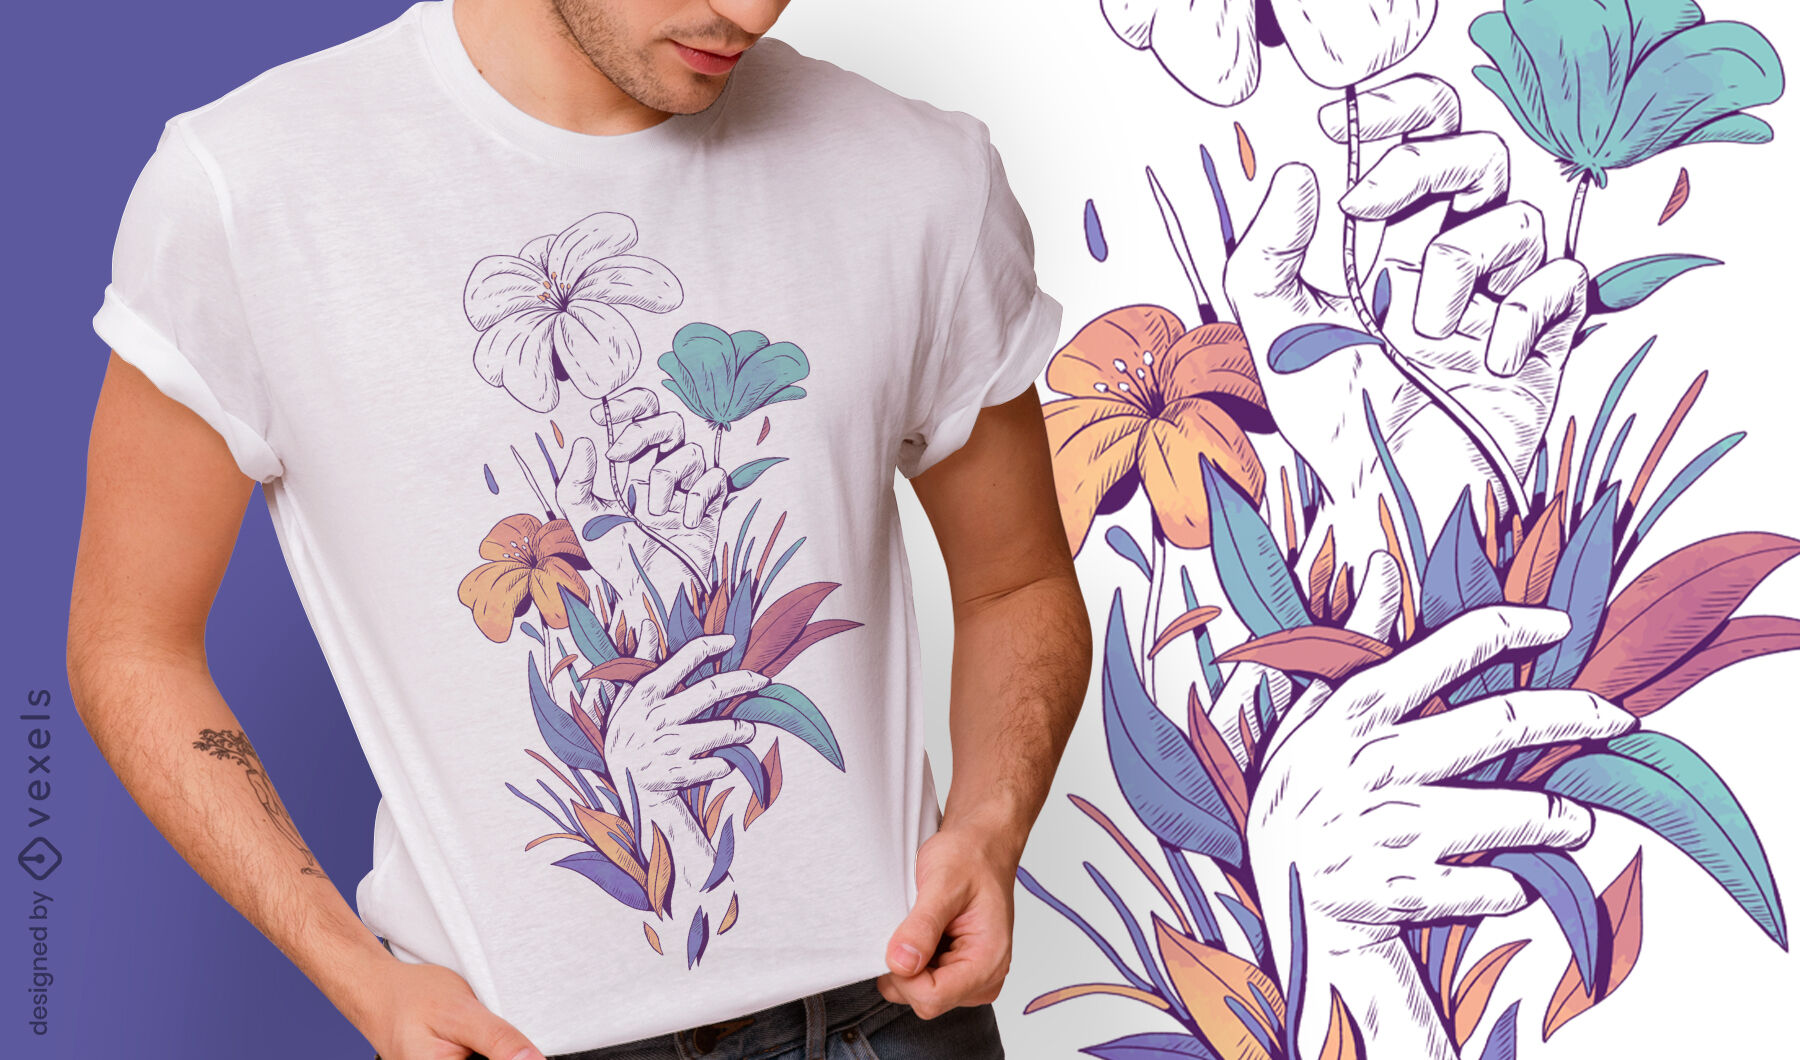 Hands with flowers and leaves psd t-shirt design